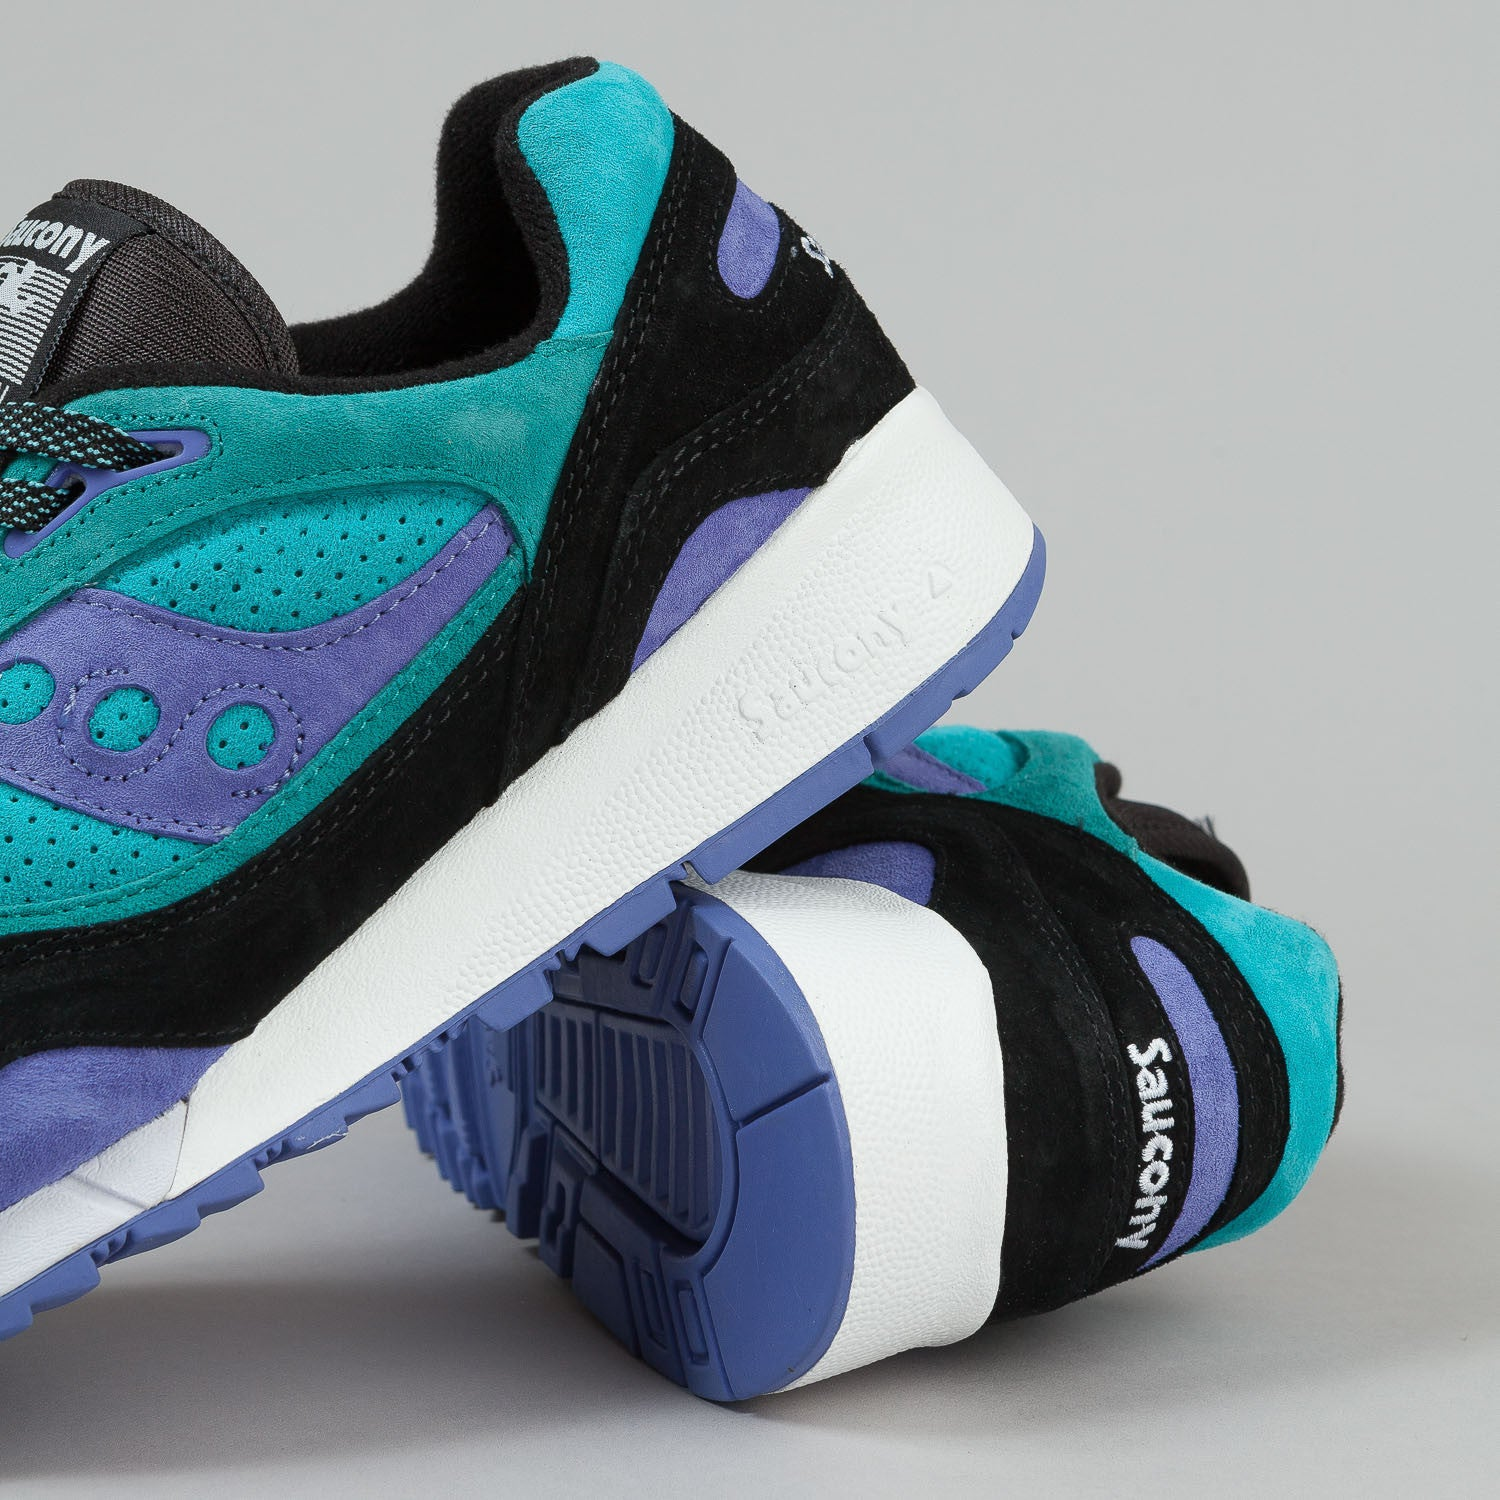 Saucony Shadow 6000 Shoes - 'Bermuda Pack'